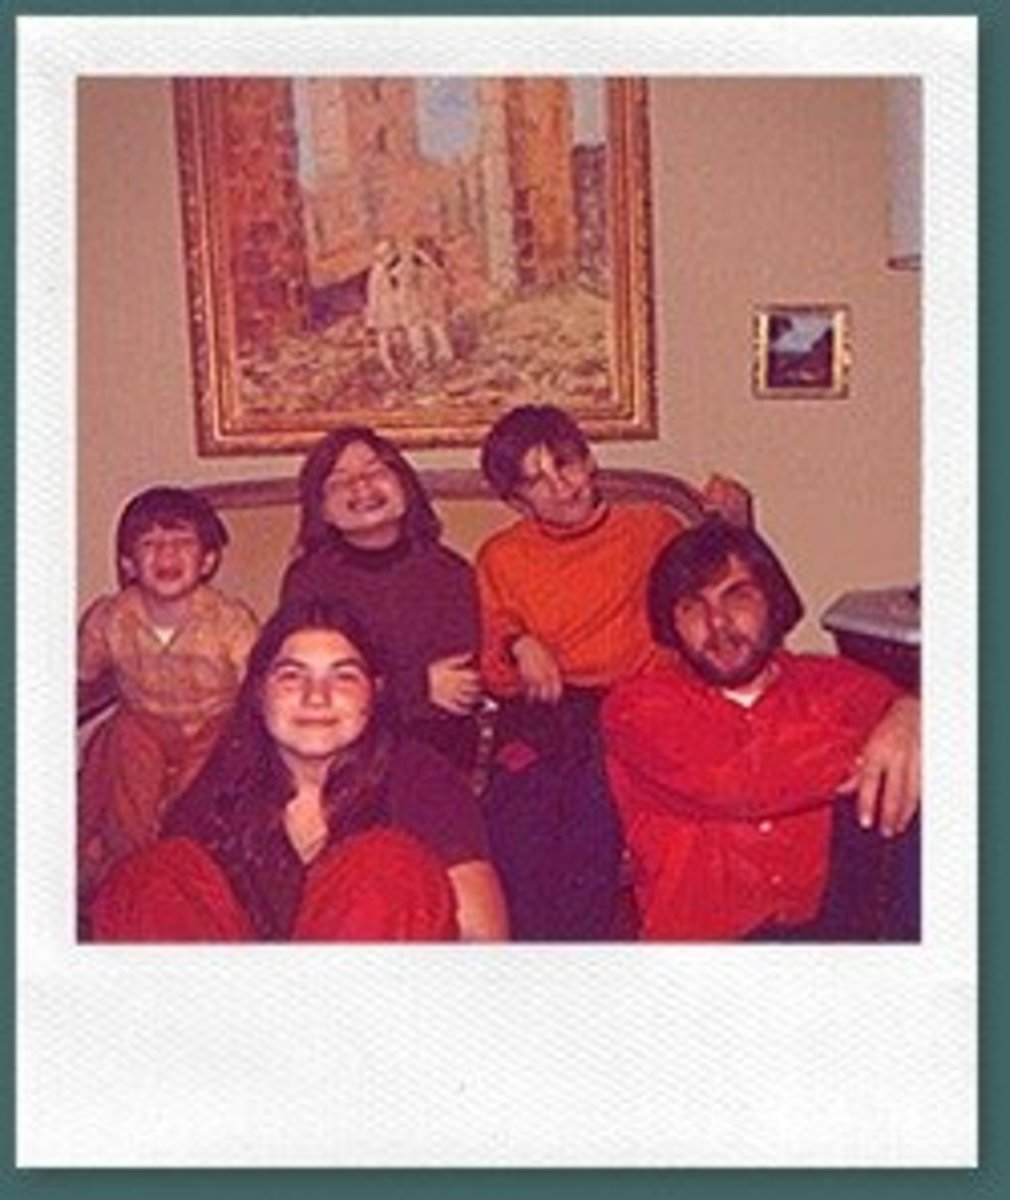 The Defeo Family,minus Ronald Sr. Ronald Jr. is on the bottom right of the photo.